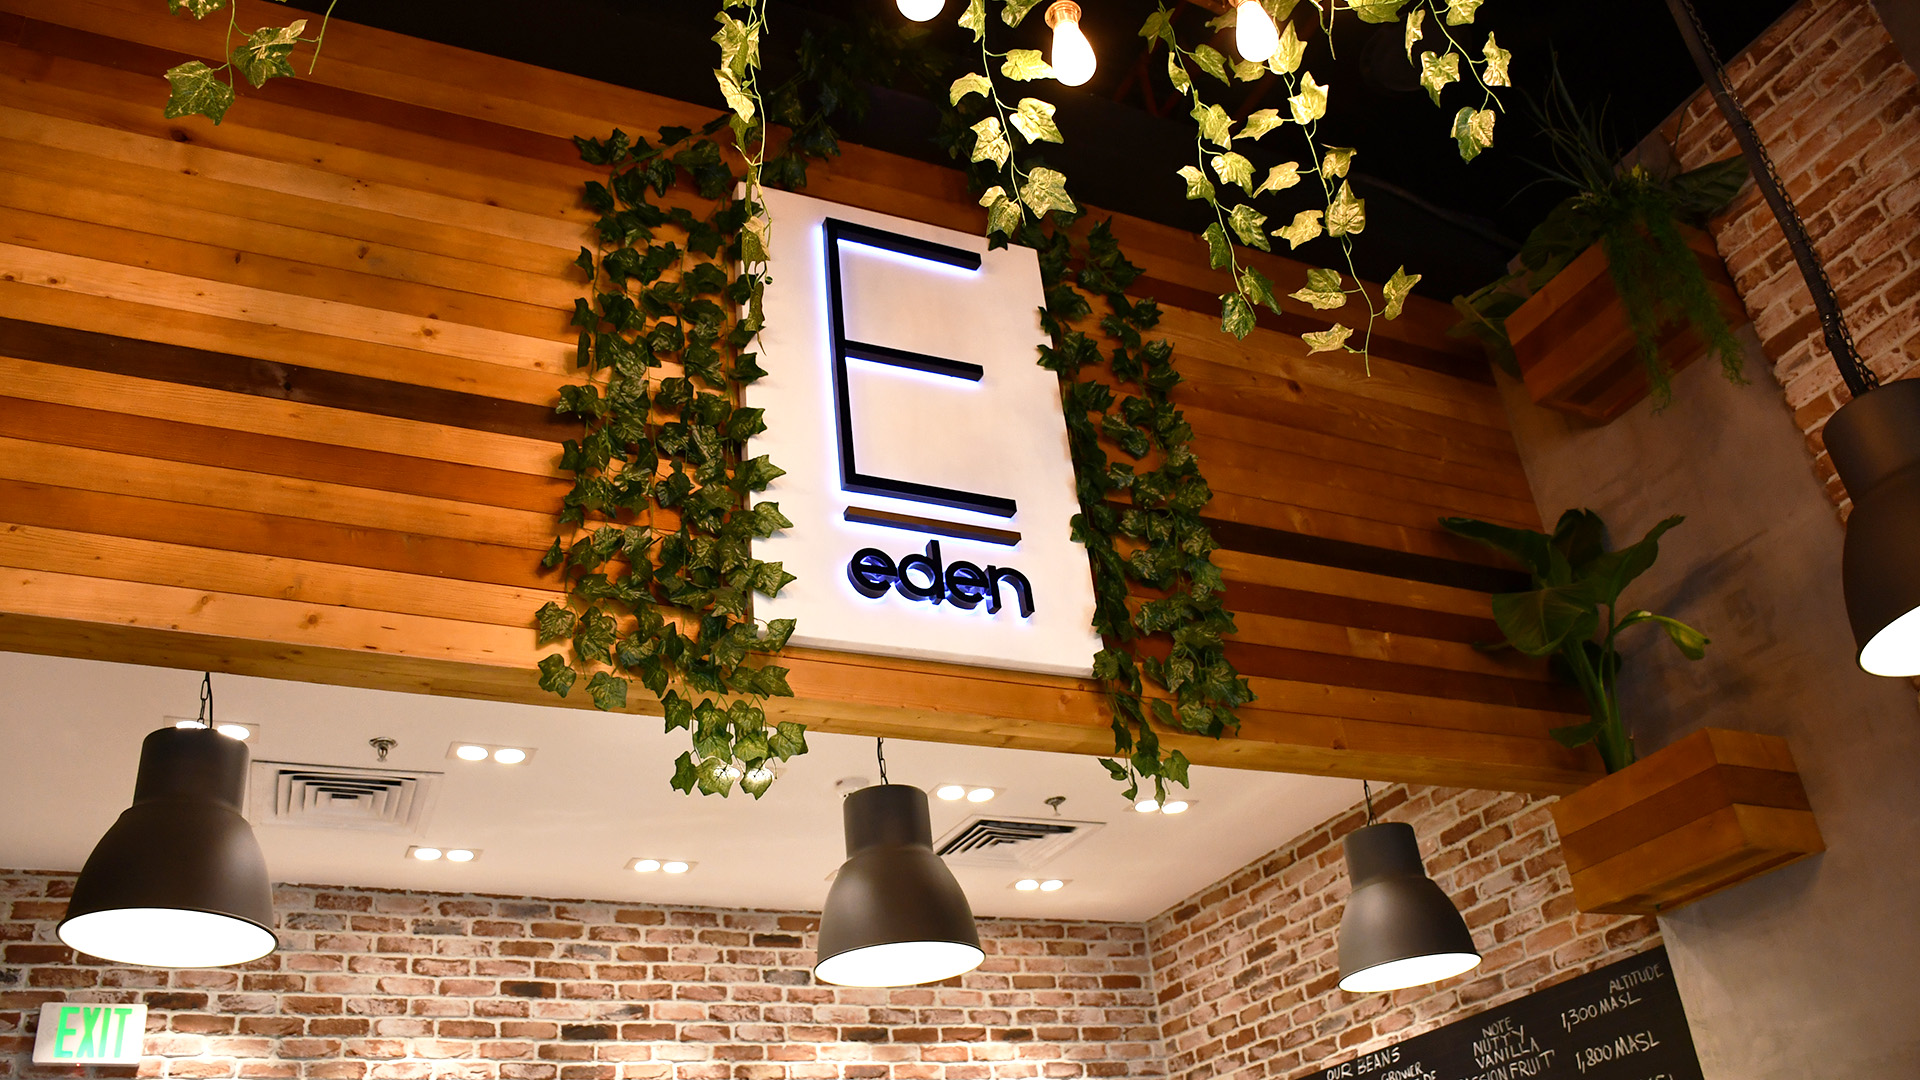 Interior fit-out and custom made furniture by ME Visual for Eden Cafe in The Pearl, Qatar